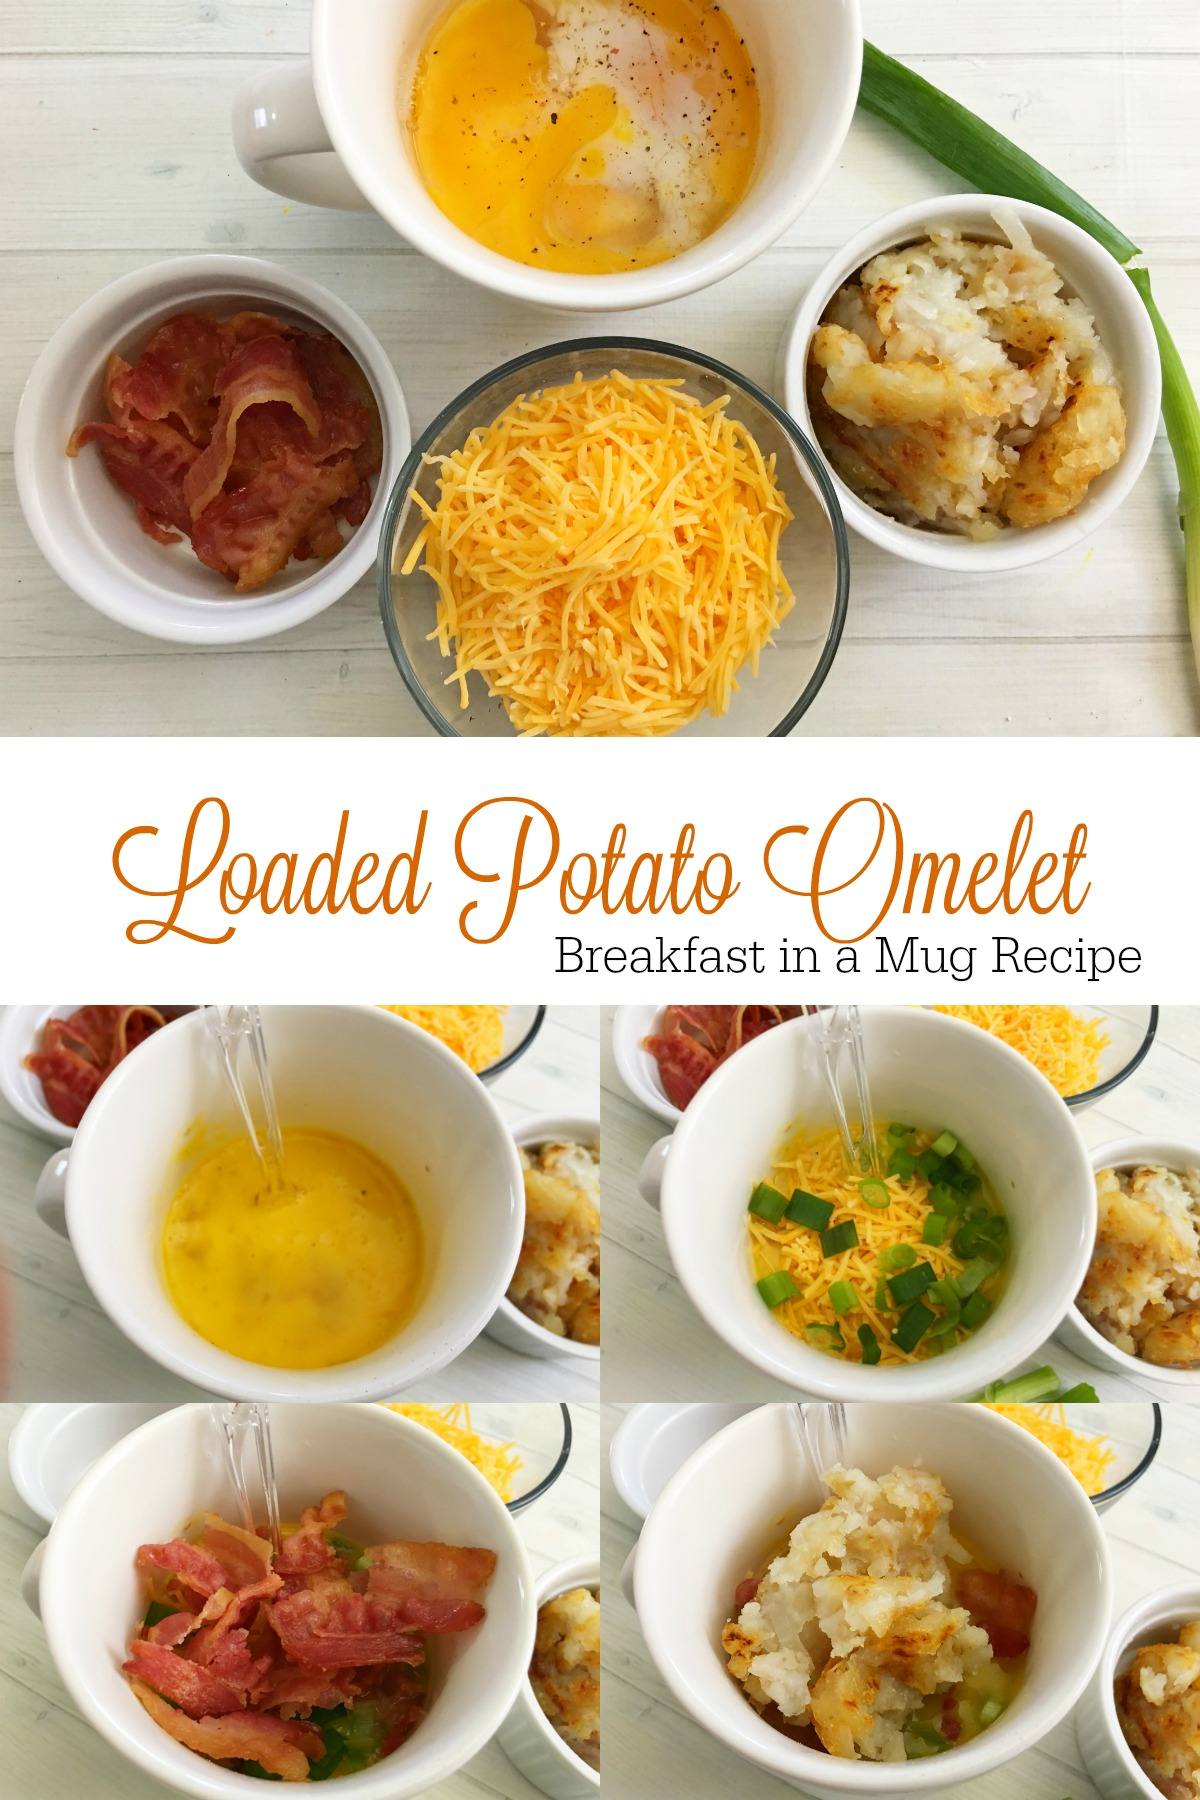 Loaded Potato Breakfast Omelet in a Mug